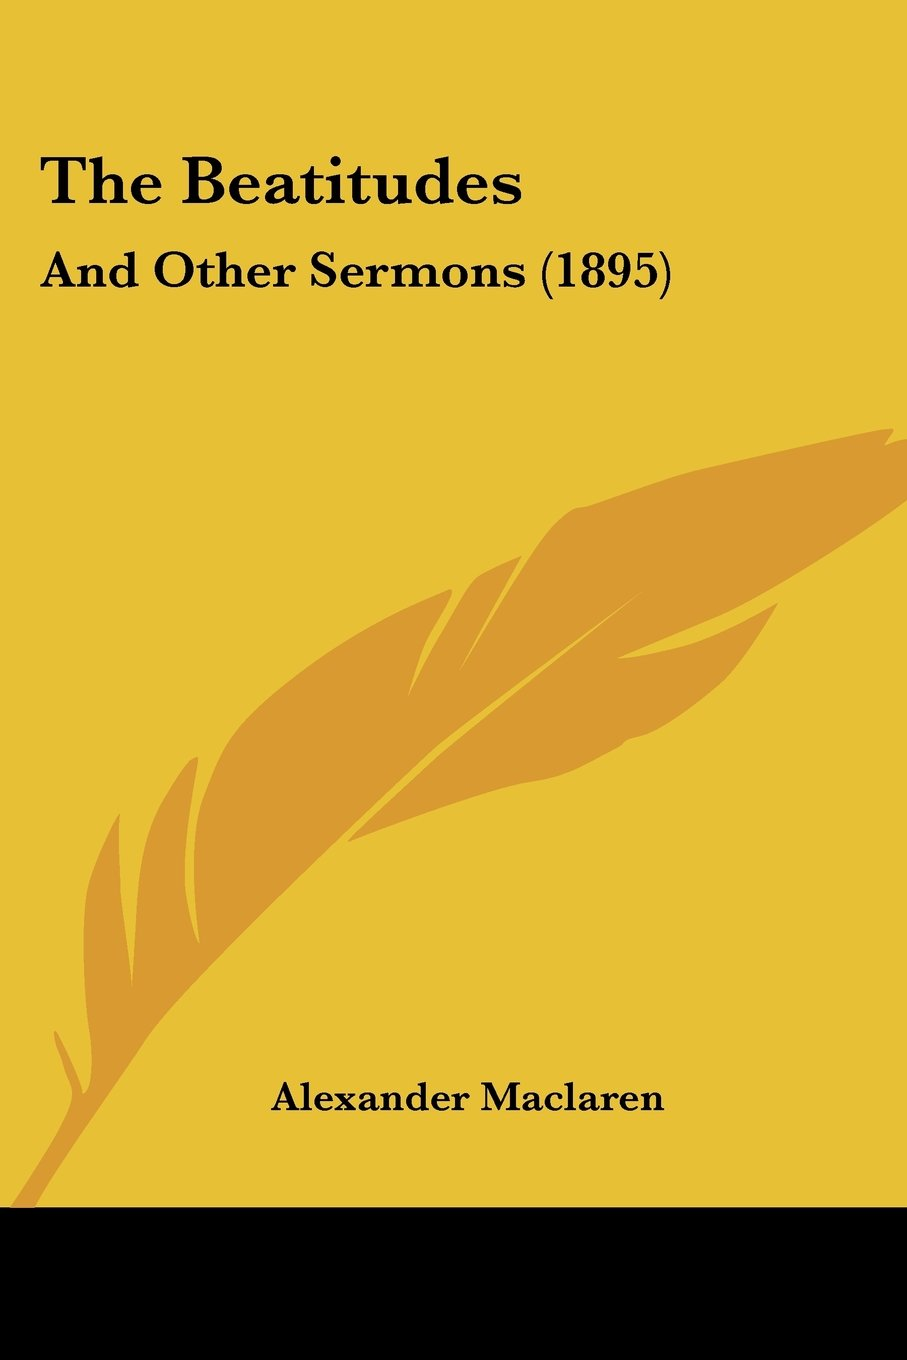 The Beatitudes: And Other Sermons (1895) pdf